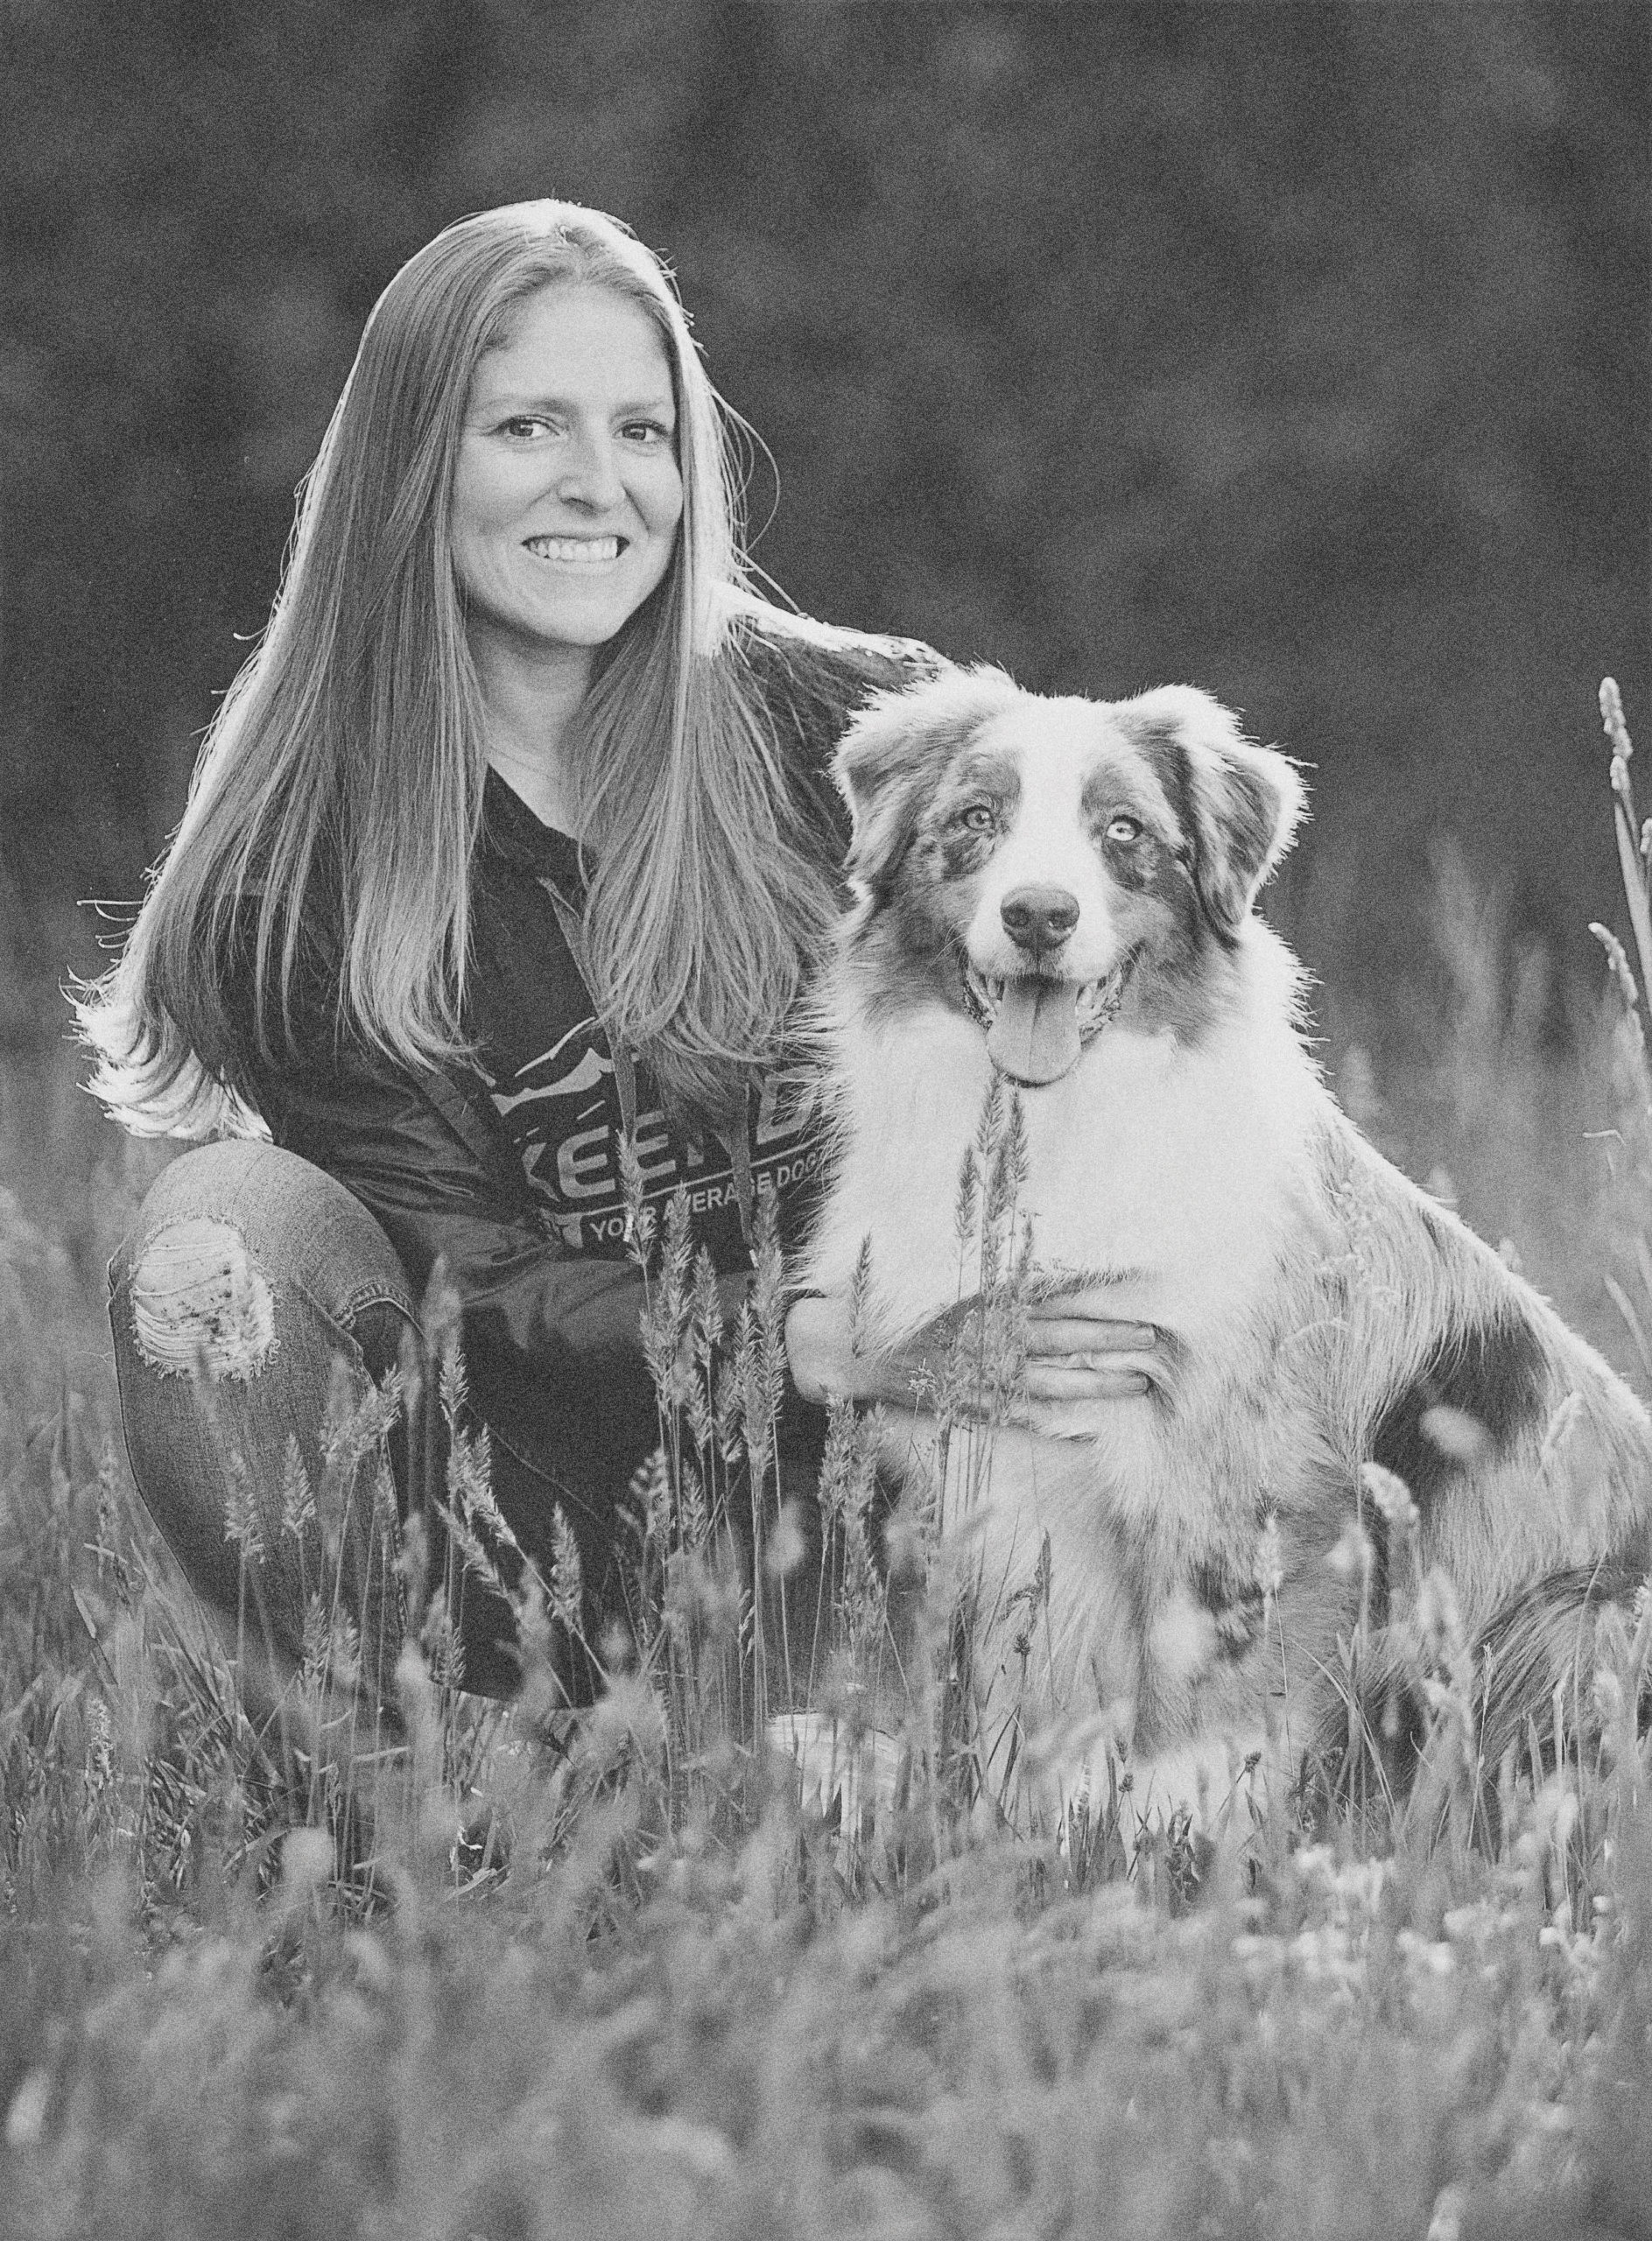 Katrina Kensington - Owner Head Dog Trainer